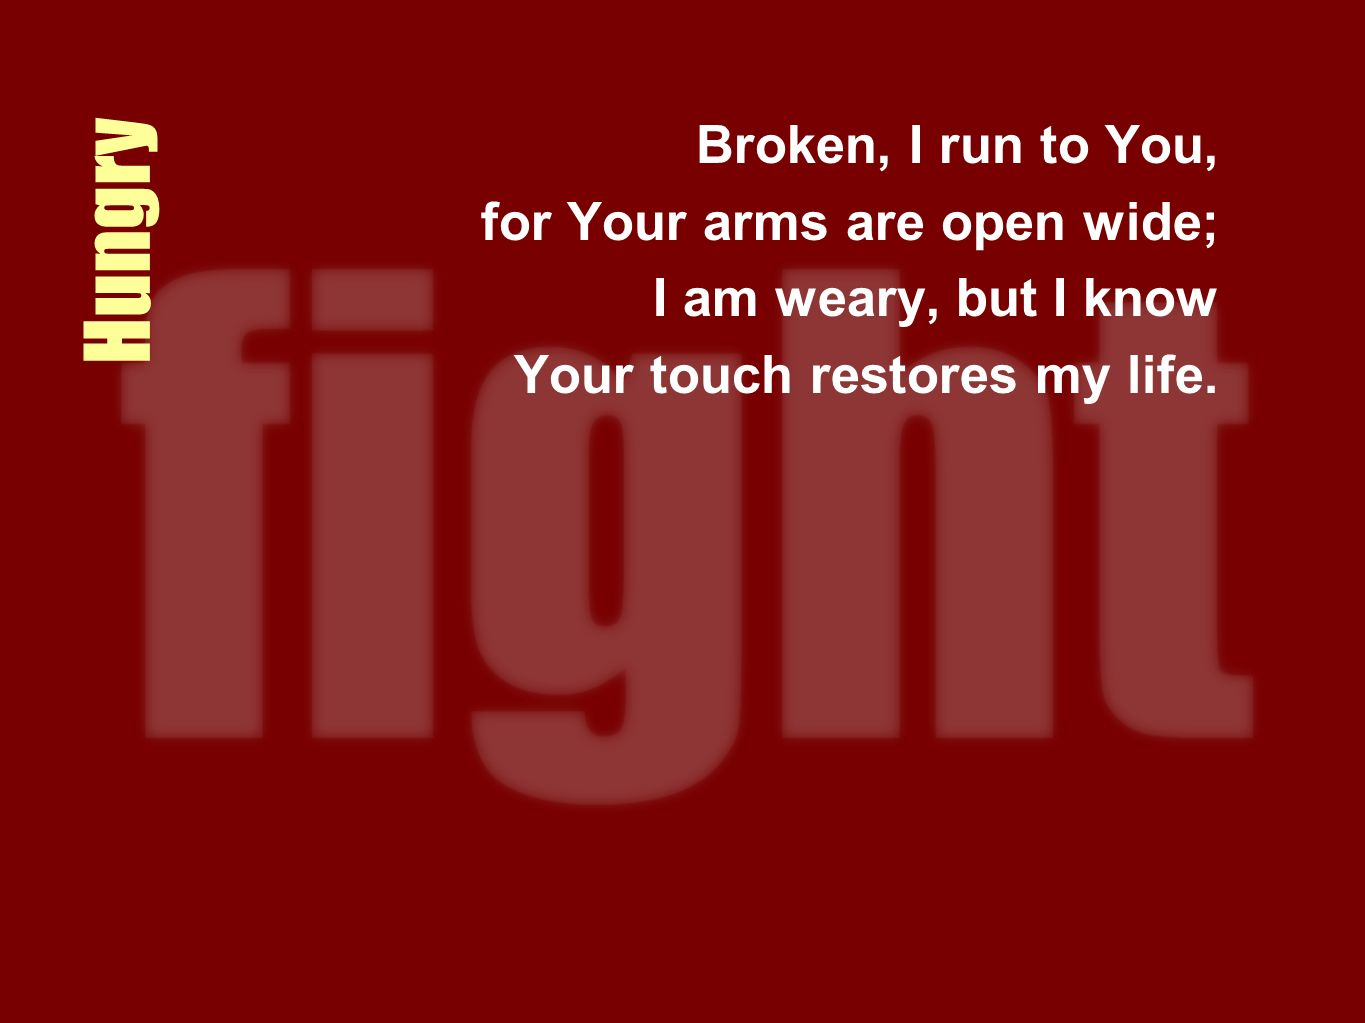 Hungry Broken, I run to You, for Your arms are open wide; I am weary, but I know Your touch restores my life.